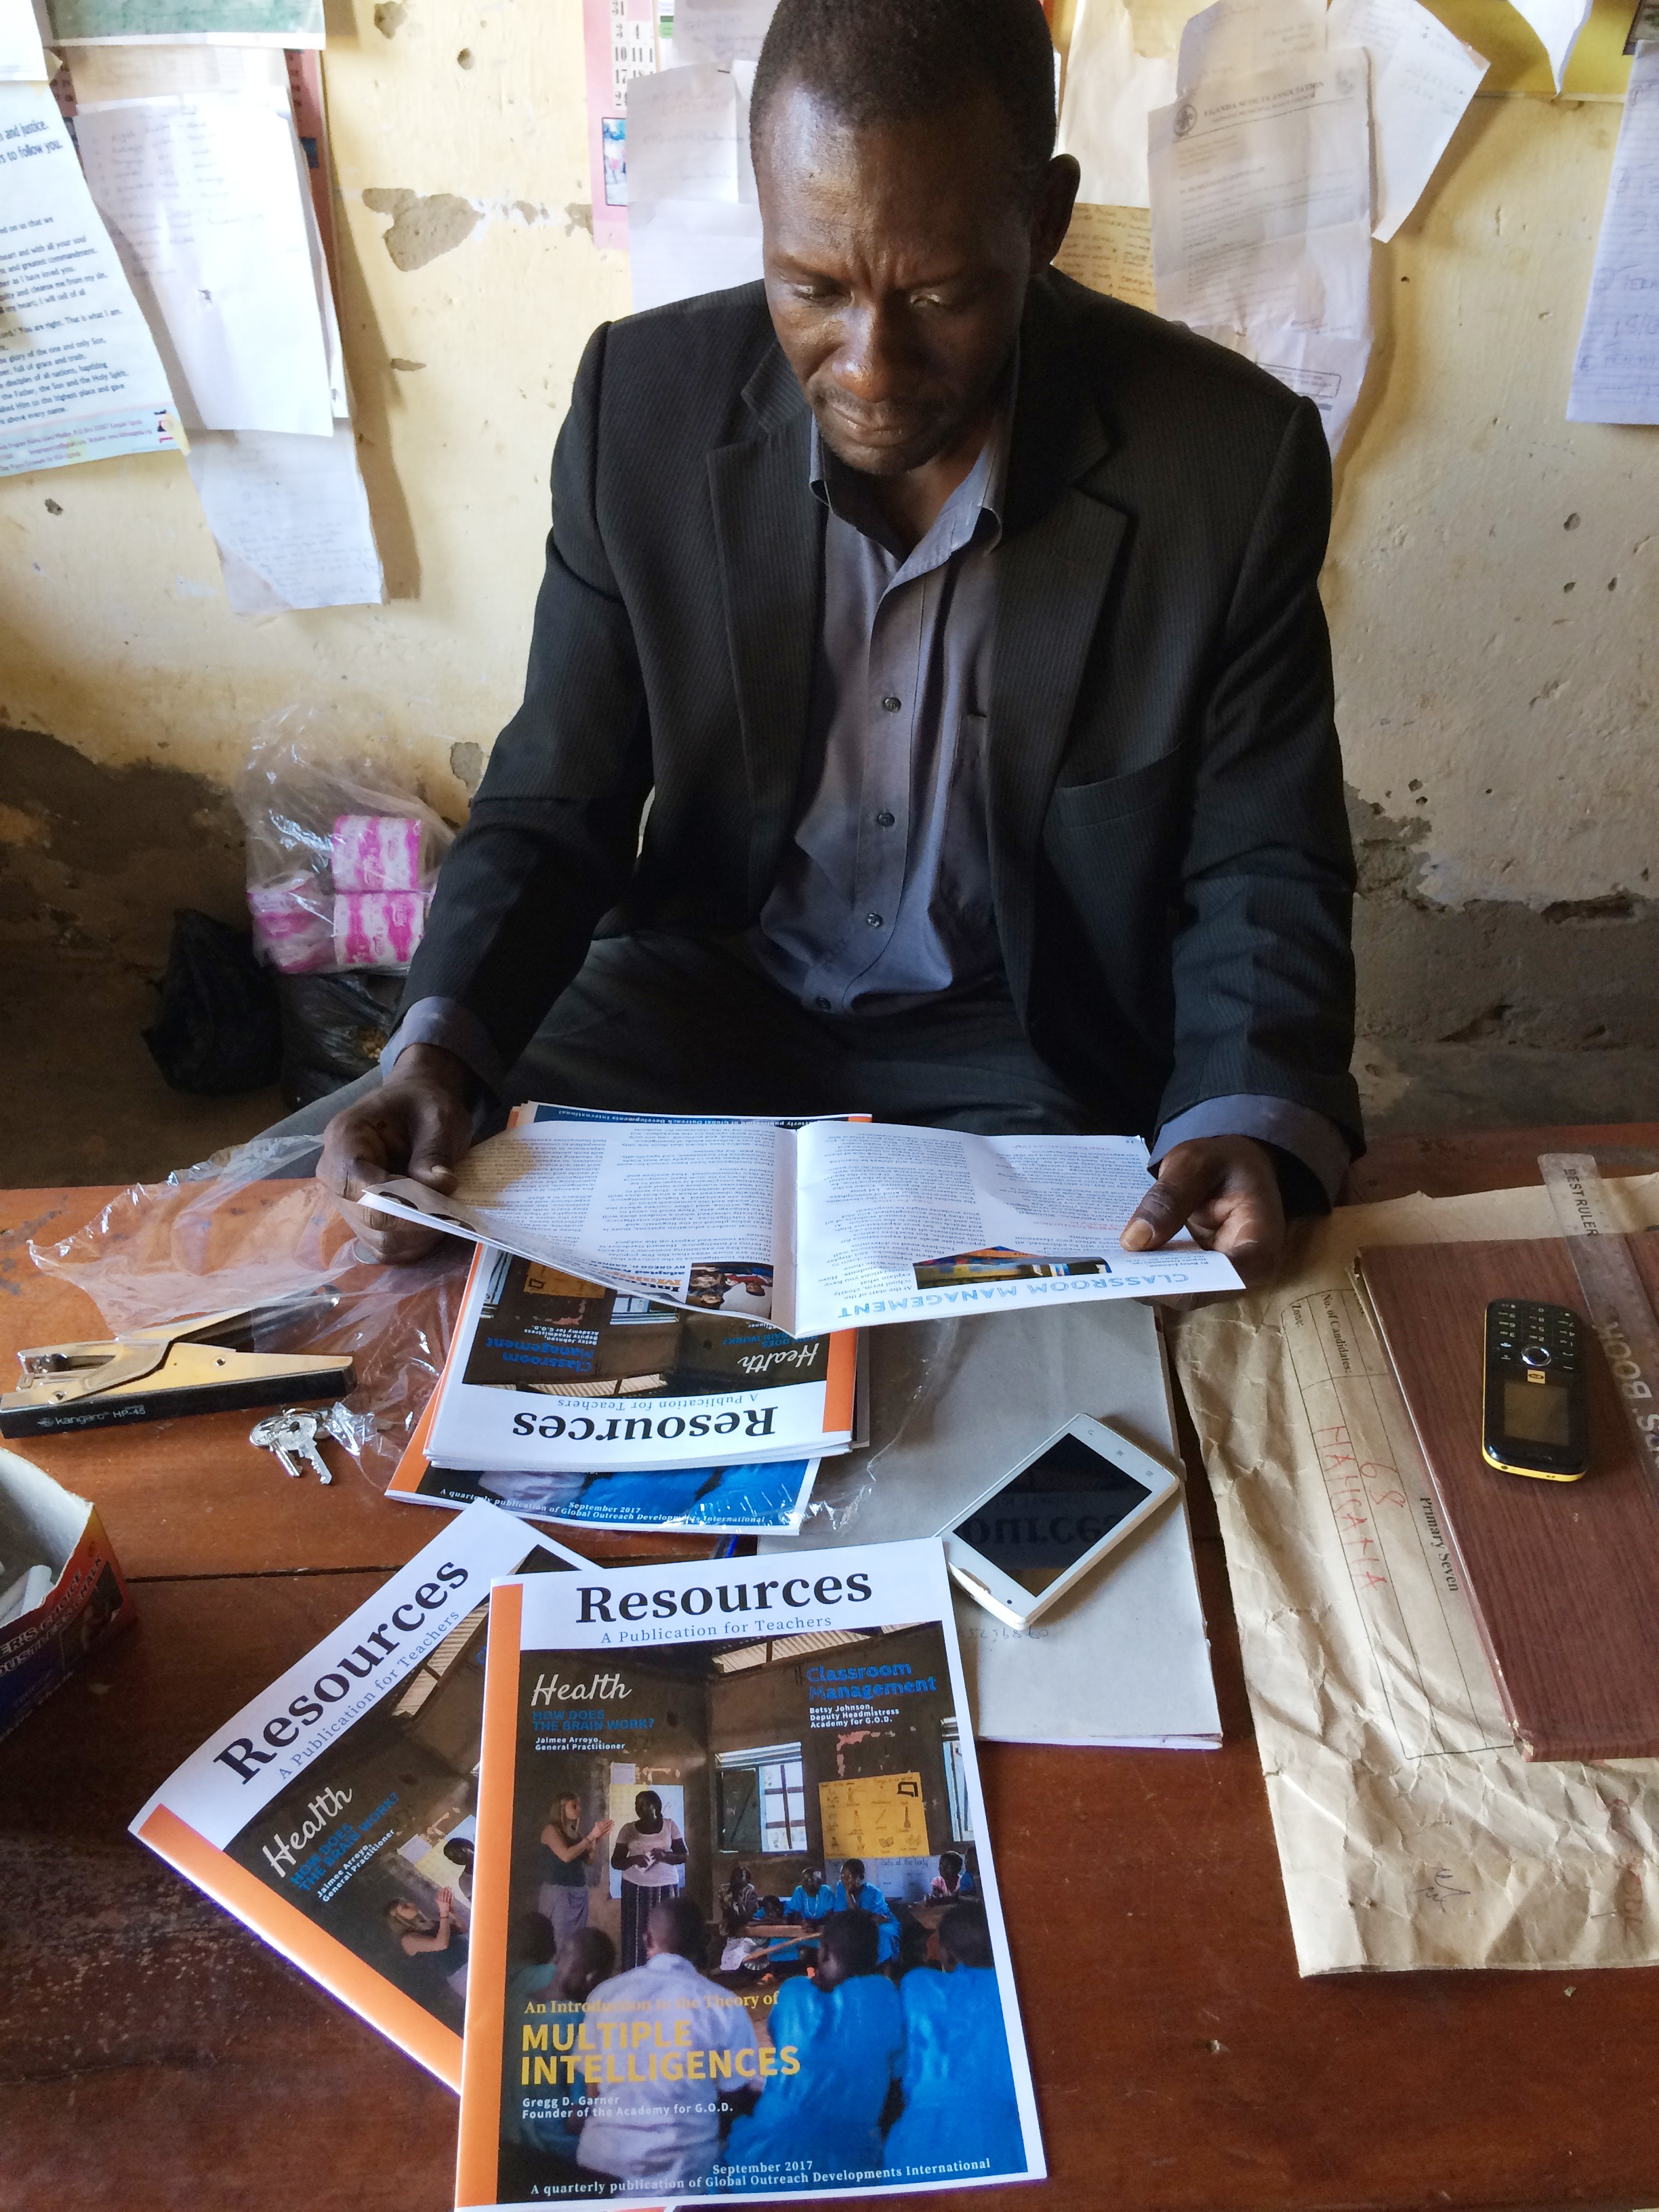 The Headmaster of St. John's Primary enjoyed the magazine and helped distribute the extra copies to other schools and the district's education authorities. Our work at St. John's has already gotten their attention, but to have written explanation of some of the approaches is a gift!